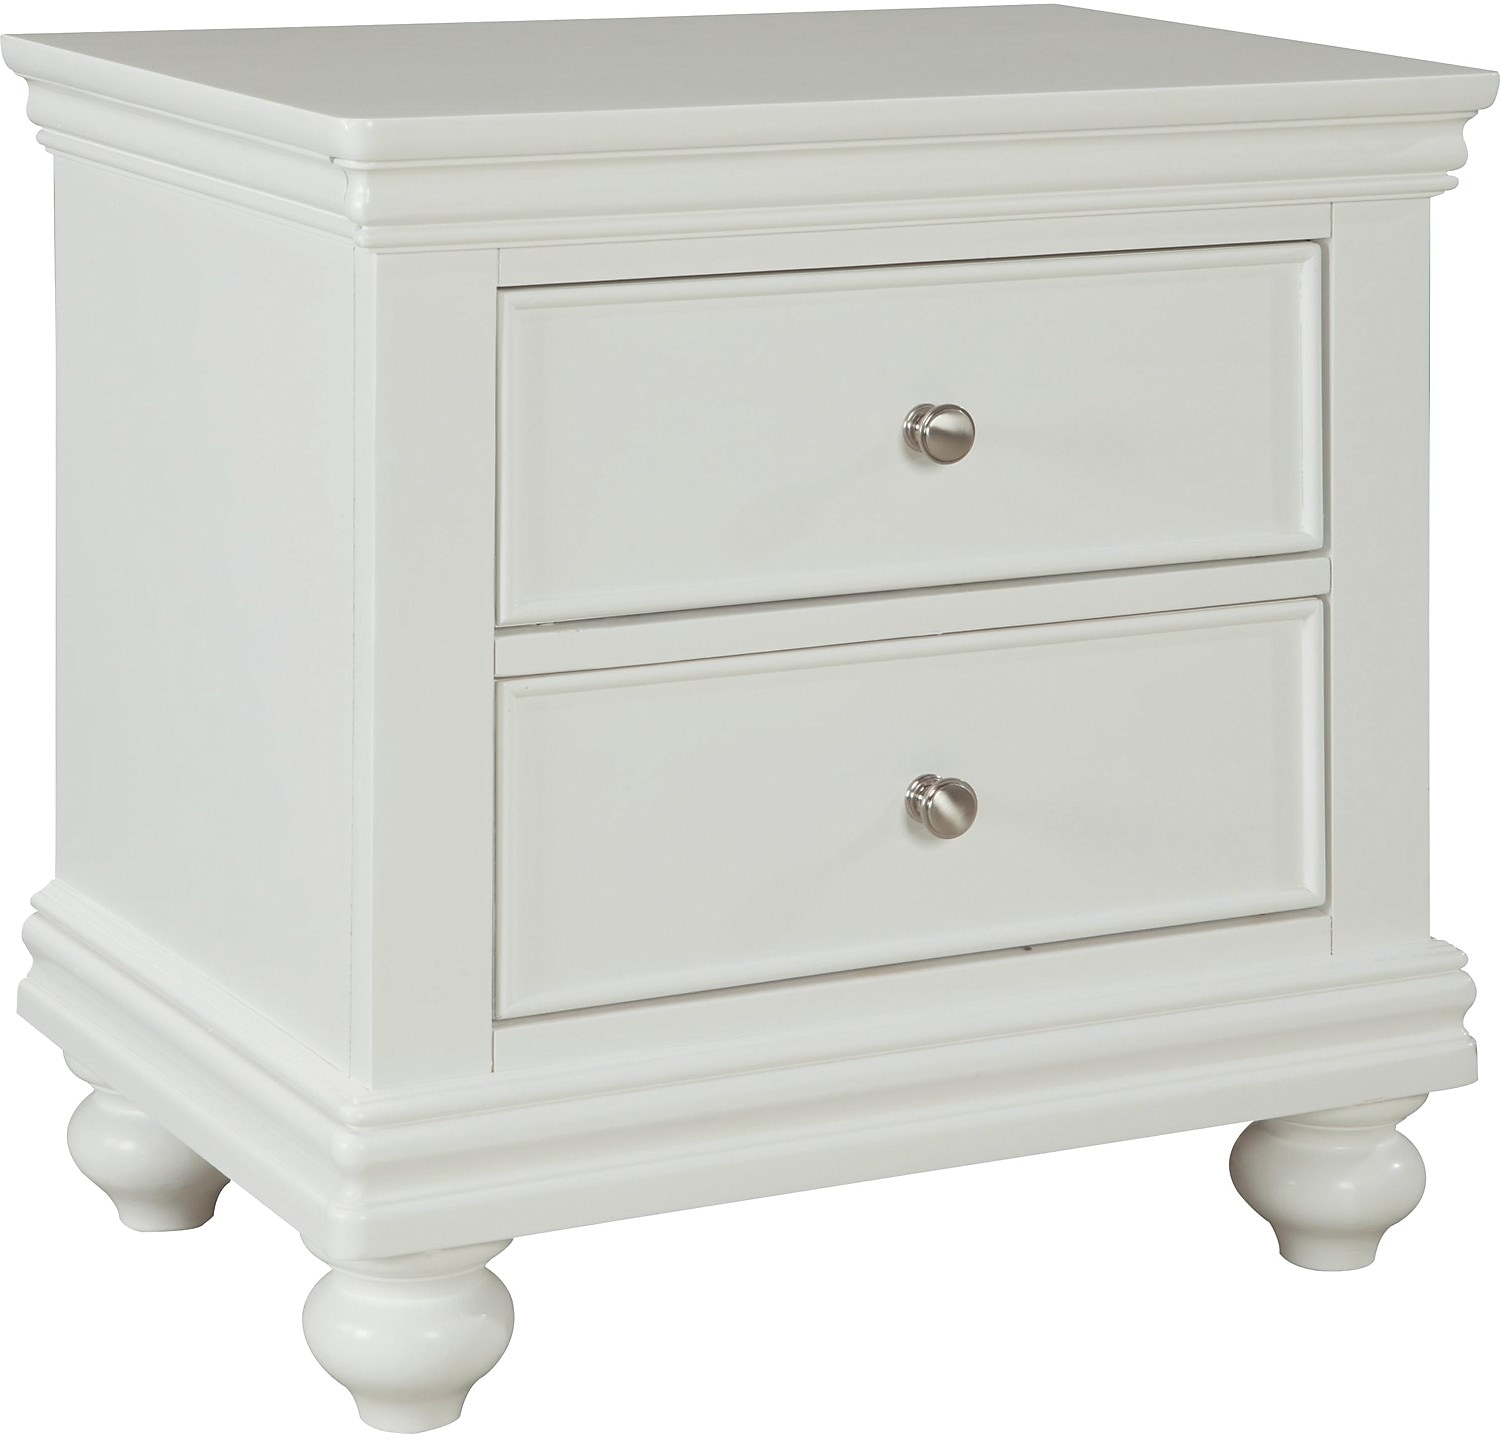 nightstands  the brick - bridgeport nightstand – white